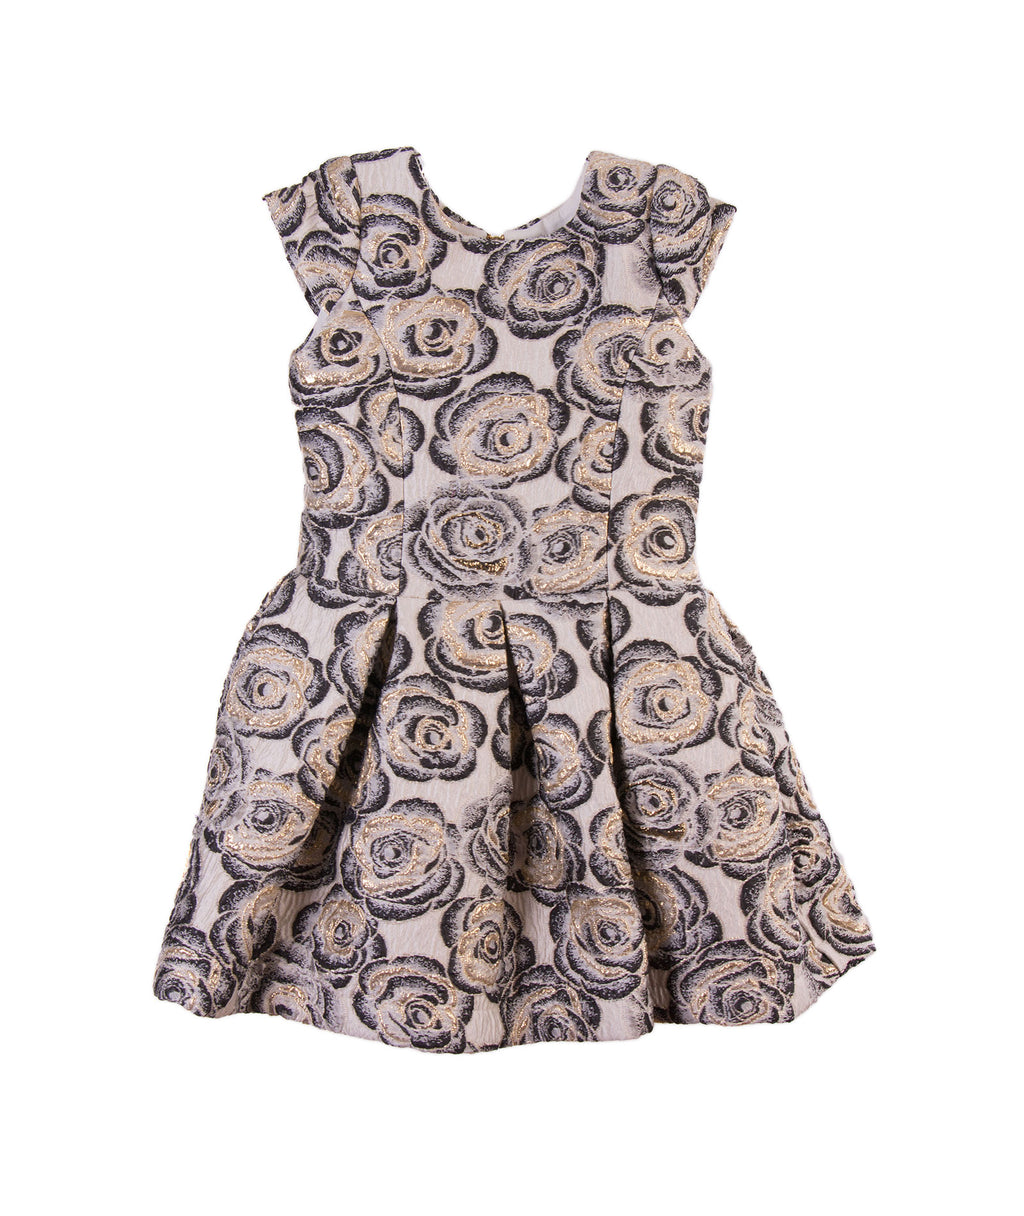 Zoe Ltd. Toddlers Rose Brocade Dress - Frankie's on the Park